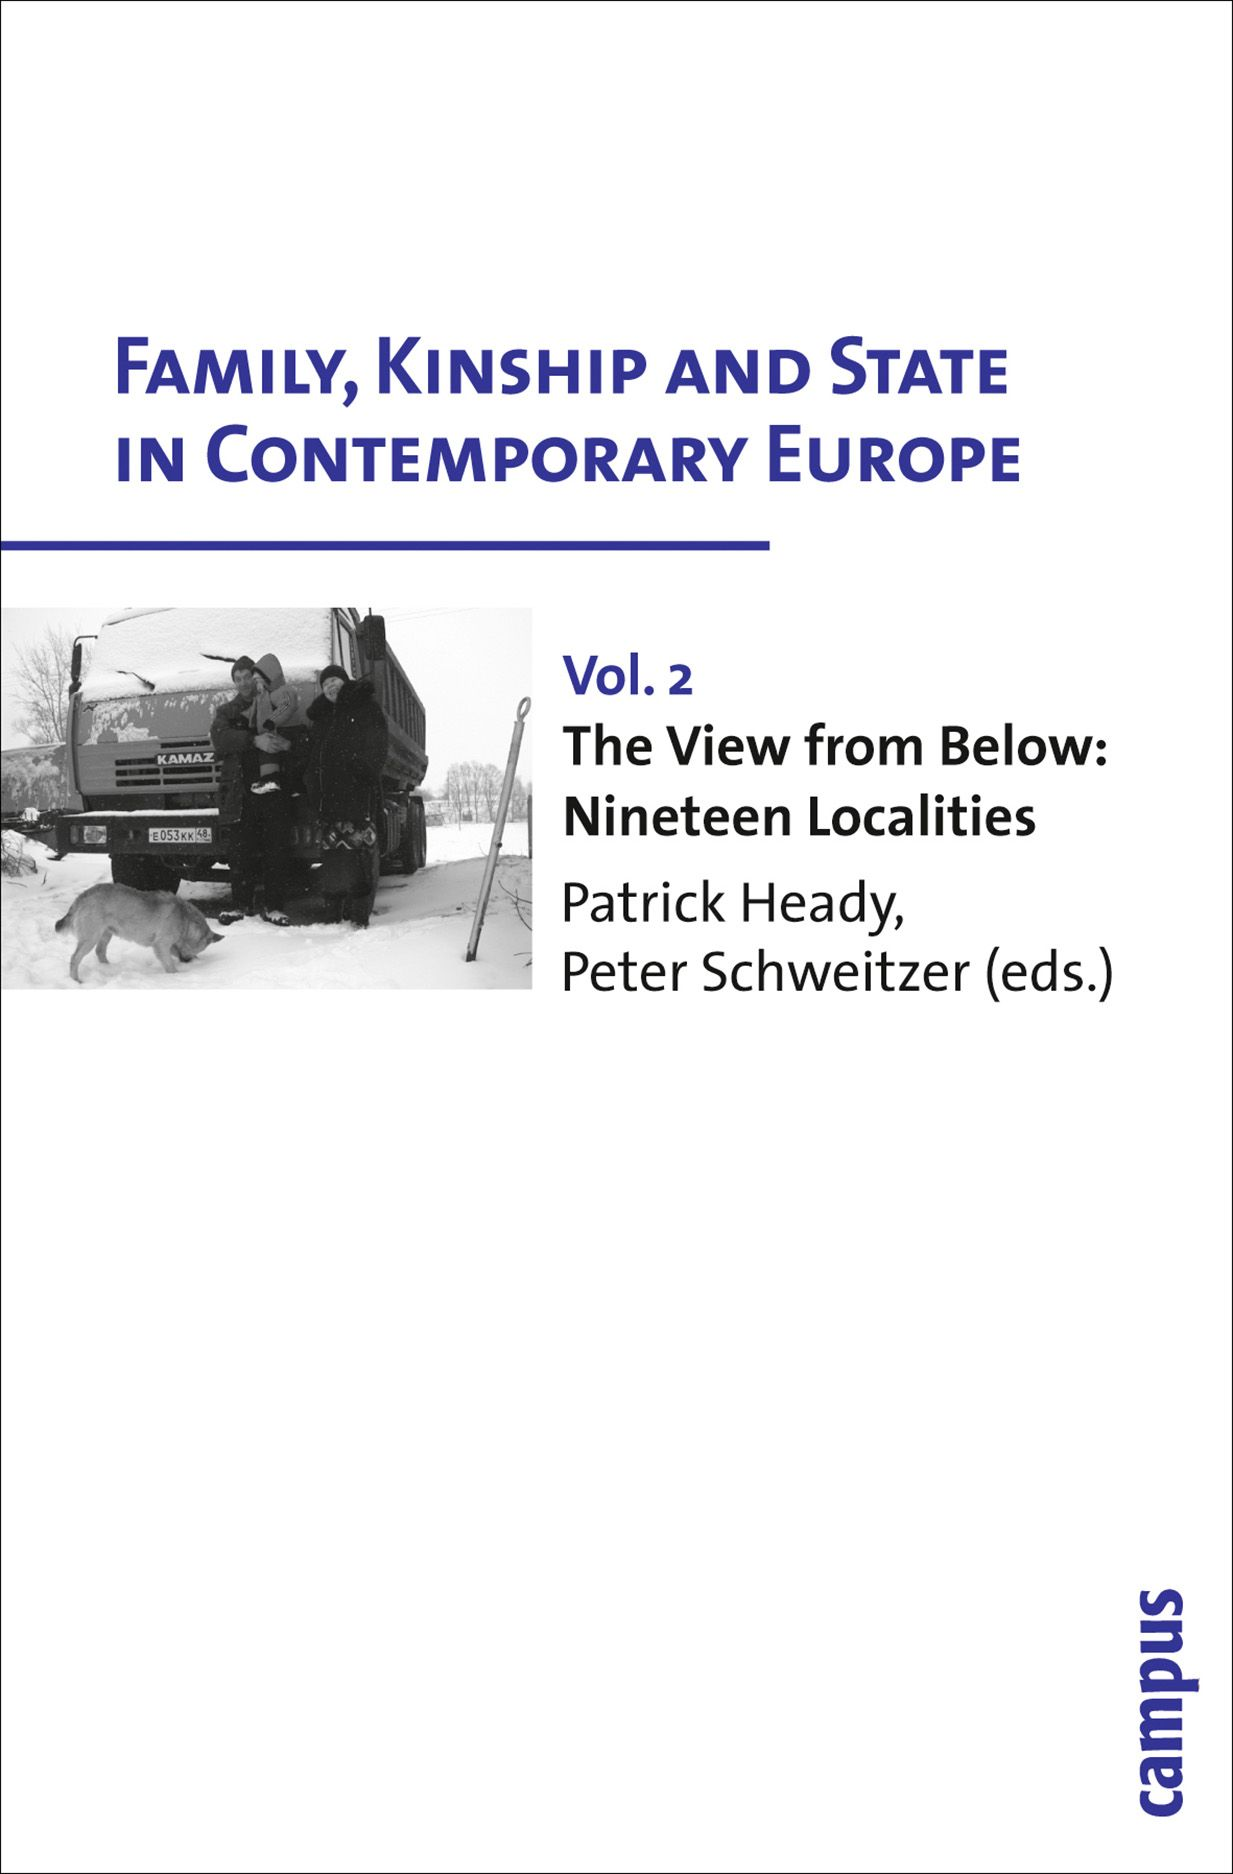 Family, Kinship and State in Contemporary Europe, Vol. 2: The View From Below: Nineteen Localities